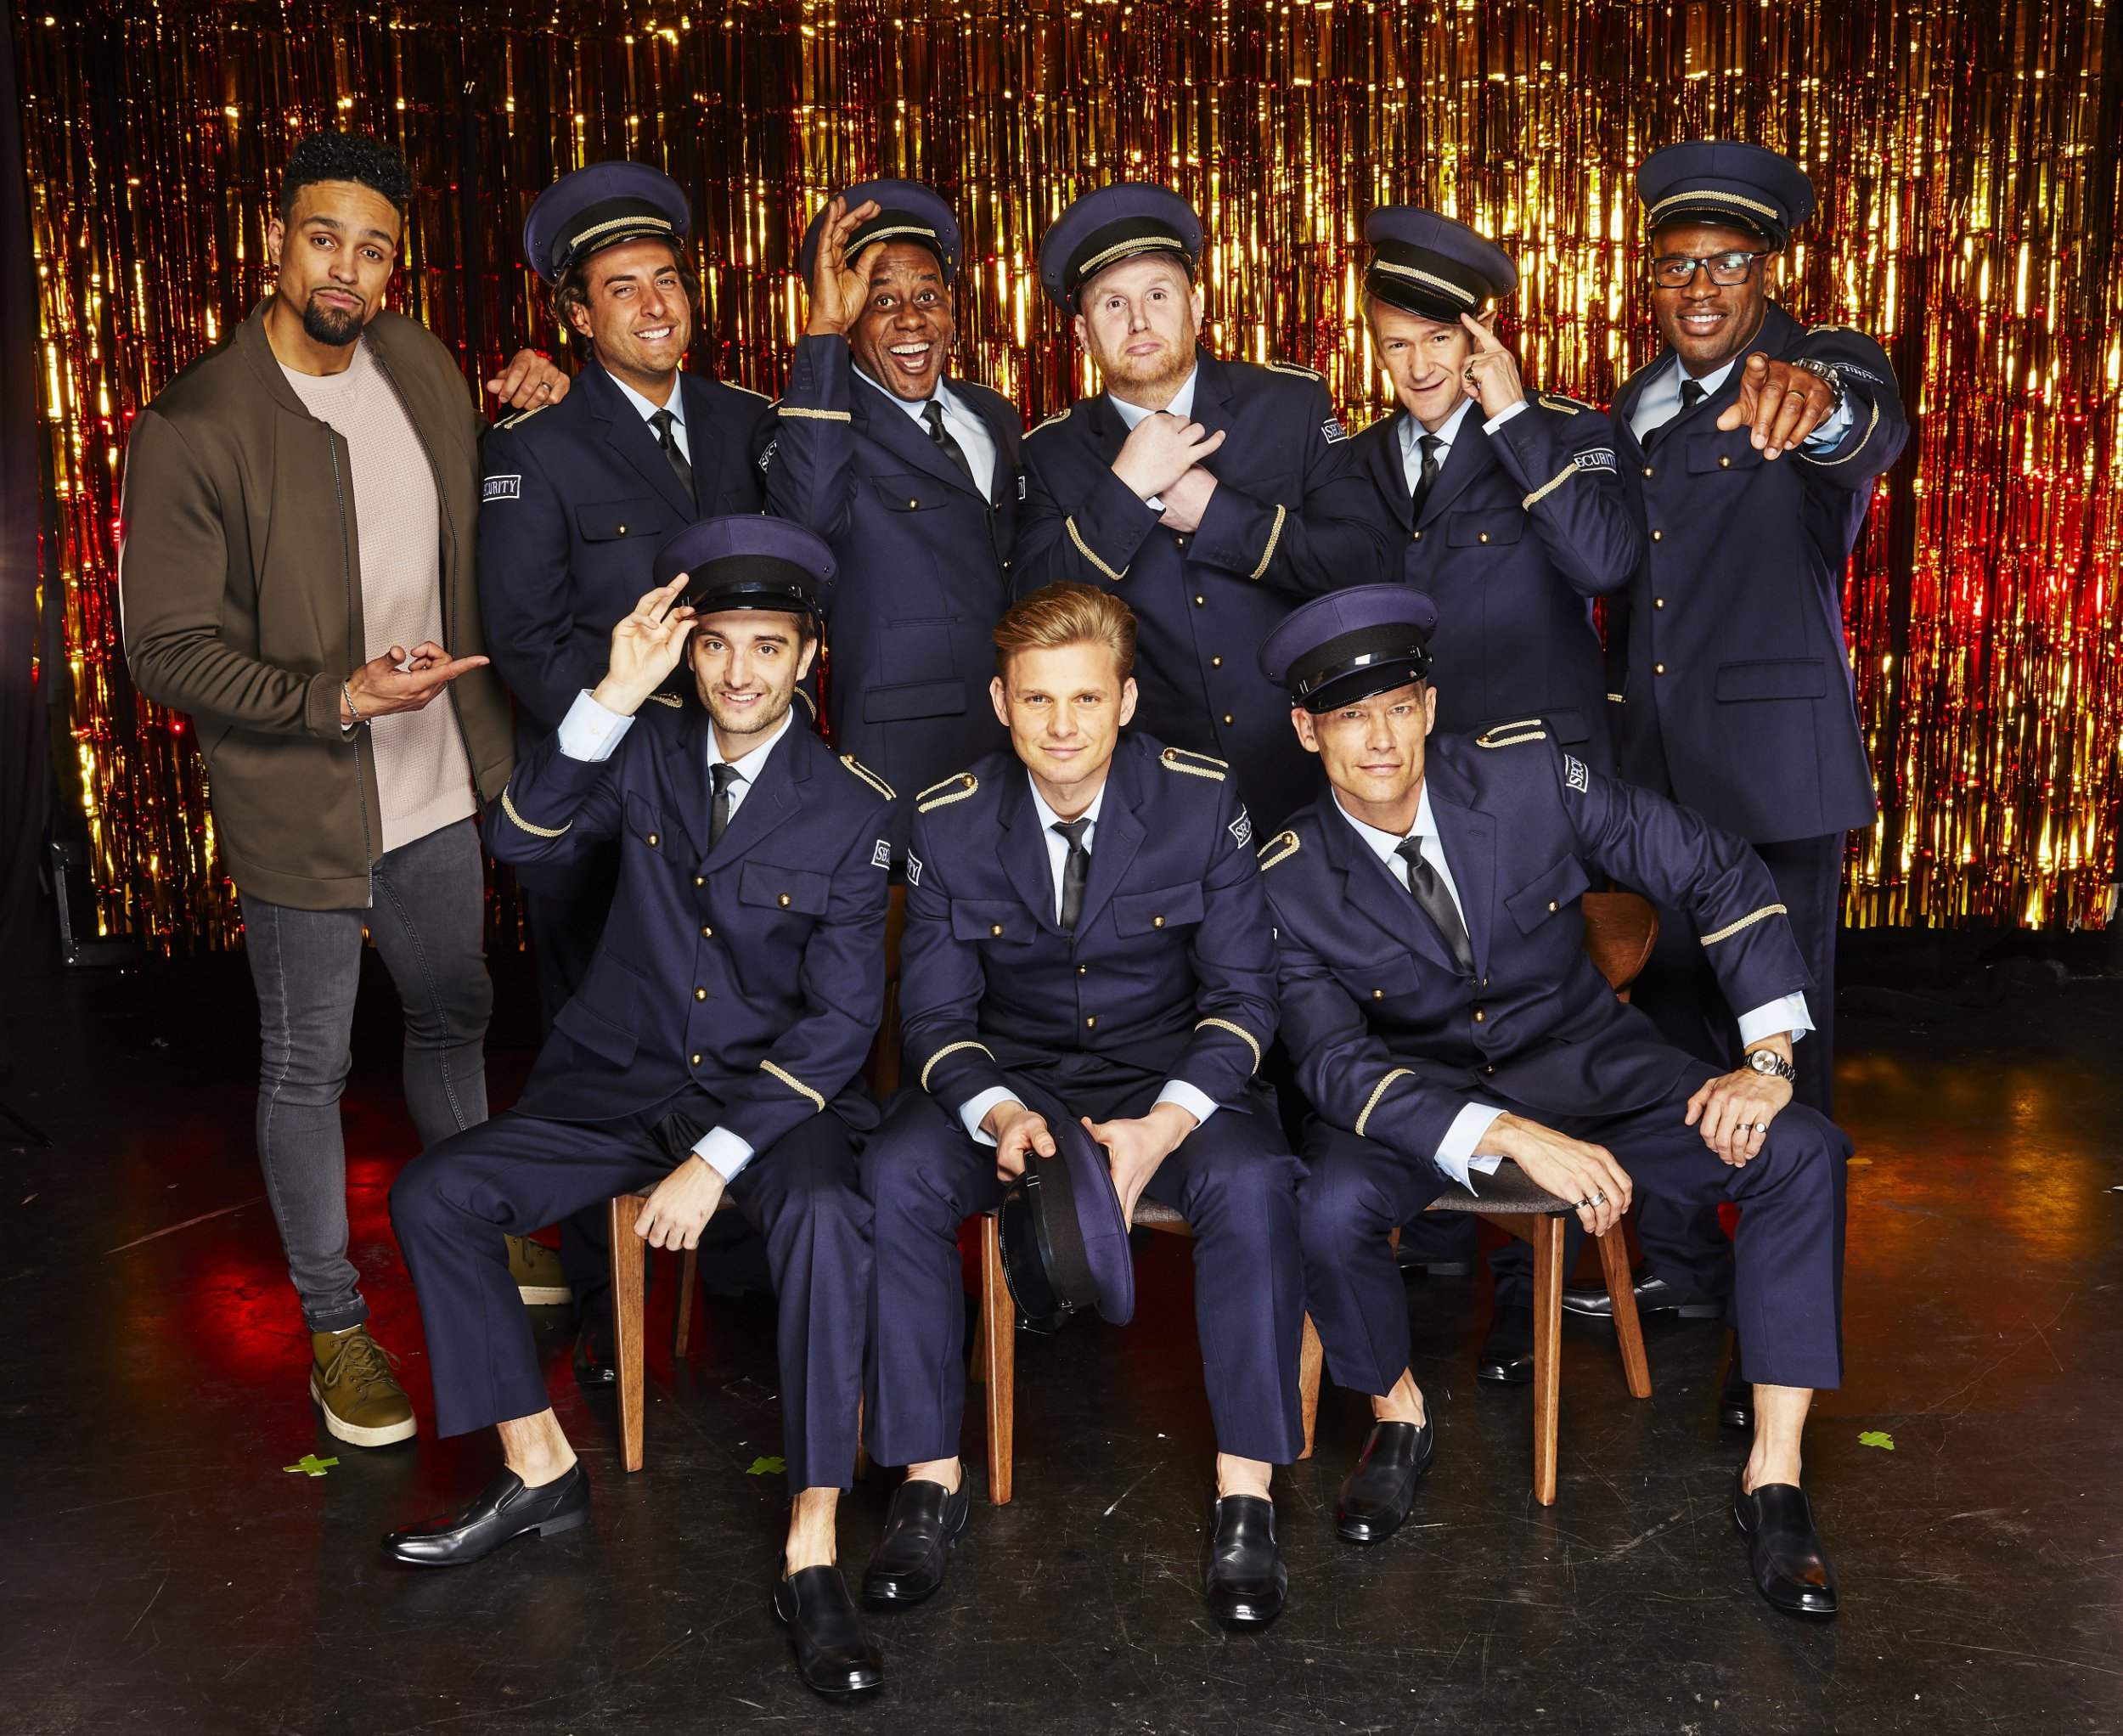 "STRICTLY EMBARGOED PICTURE: FOR PUBLICATION FROM TUESDAY 20th MARCH 2018 From Spungold Productions THE REAL FULL MONTY : Wednesday 28th March 2018 on ITV Pictured: (l-r, back row) Ashley Banjo James ""Arg"" Argent , Ainsley Harriott, John Hartson, Alexander Armstrong, Ugo Monye (front row, l-r) Tom Parker, Jeff Brazier, and John Partridge One of the biggest and boldest TV hits of last year is back for a brand new full-frontal extravaganza! A fresh set of stars learn a new super-sized version of the sexy Full Monty routine from scratch, before fully stripping to raise awareness for prostate and testicular cancer. Once again, Alexander Armstrong and Ashley Banjo and will lead the group. The brave men taking part this year are, TOWIE star James 'Arg' Argent, presenter Jeff Brazier, The Wanted???s Tom Parker, Eastenders actor John Partridge, ex-Arsenal footballer John Hartson, chef Ainsley Harriott and retired England Rugby International Ugo Monye. ?? ITV Photographer: Nicky Johnston This photograph is ?? ITV and can only be reproduced for editorial purposes directly in connection with the programme THE REAL FULL MONTY : or ITV. Once made available by the ITV Picture Desk, this photograph can be reproduced once only up until the Transmission date and no reproduction fee will be charged. Any subsequent usage may incur a fee. This photograph must not be syndicated to any other publication or website, or permanently archived, without the express written permission of ITV Picture Desk. Full Terms and conditions are available on the website www.itvpictures.com"